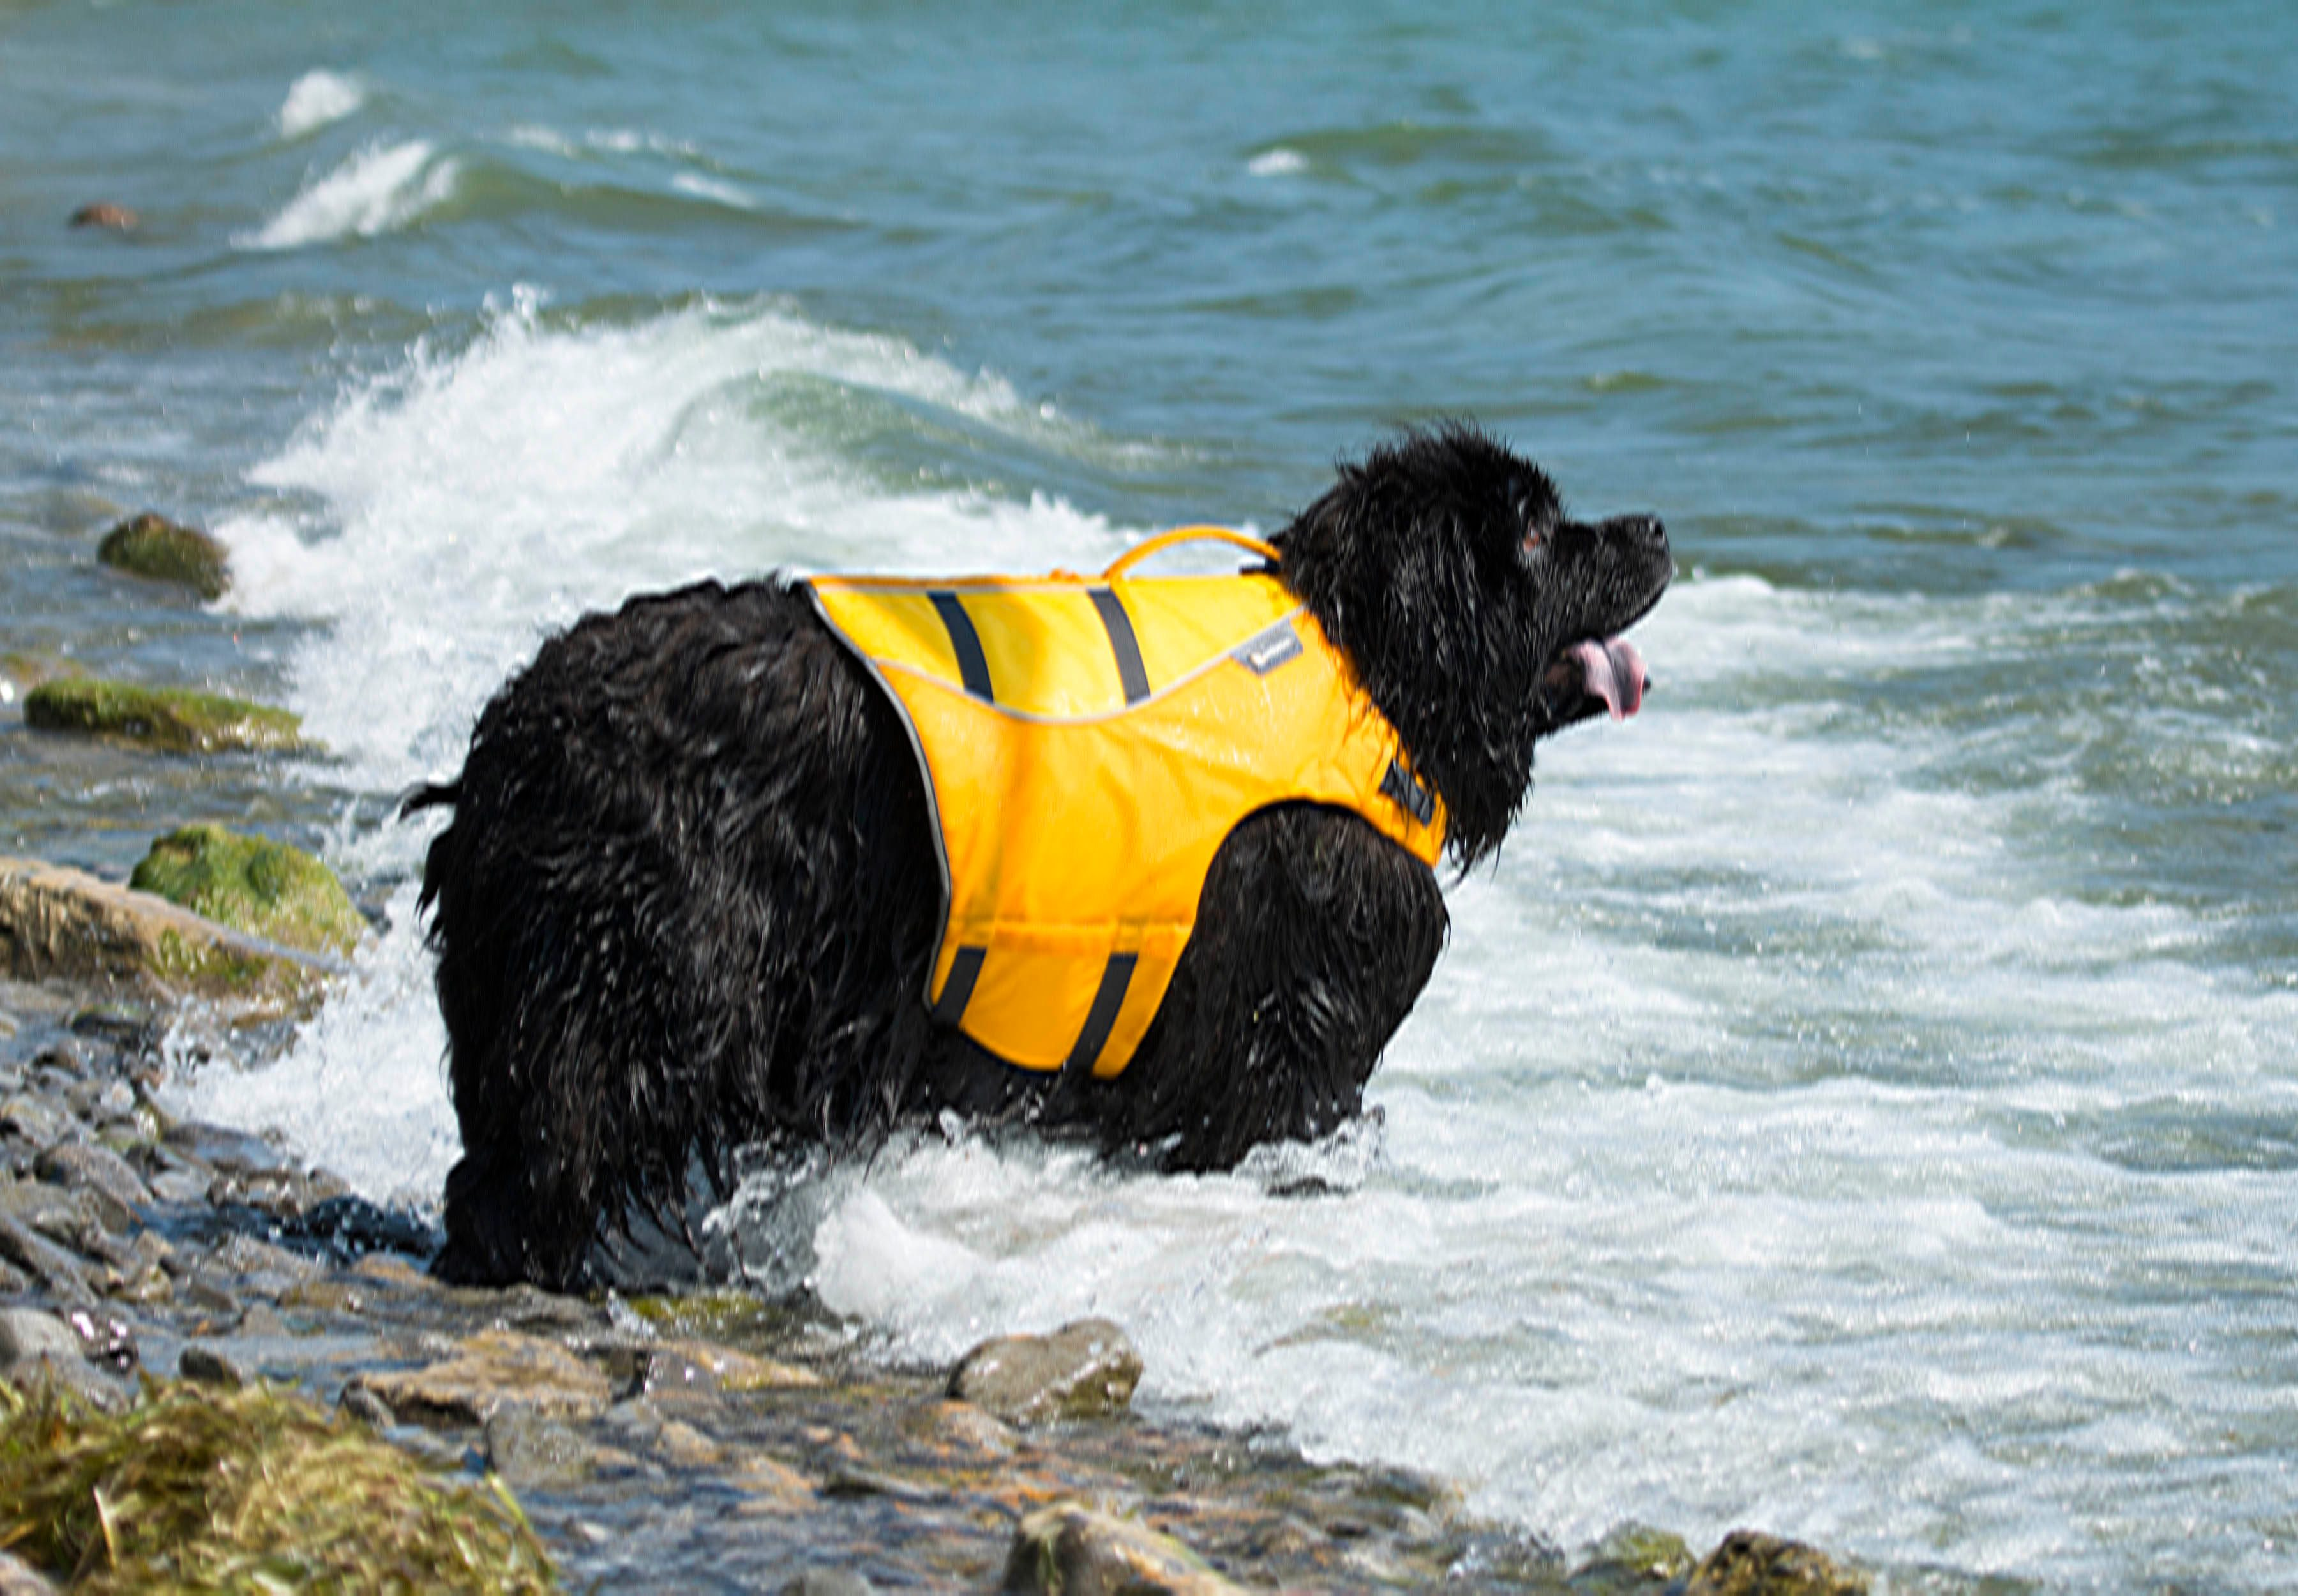 Tillie the dog wearing a life jacket and going for a swim